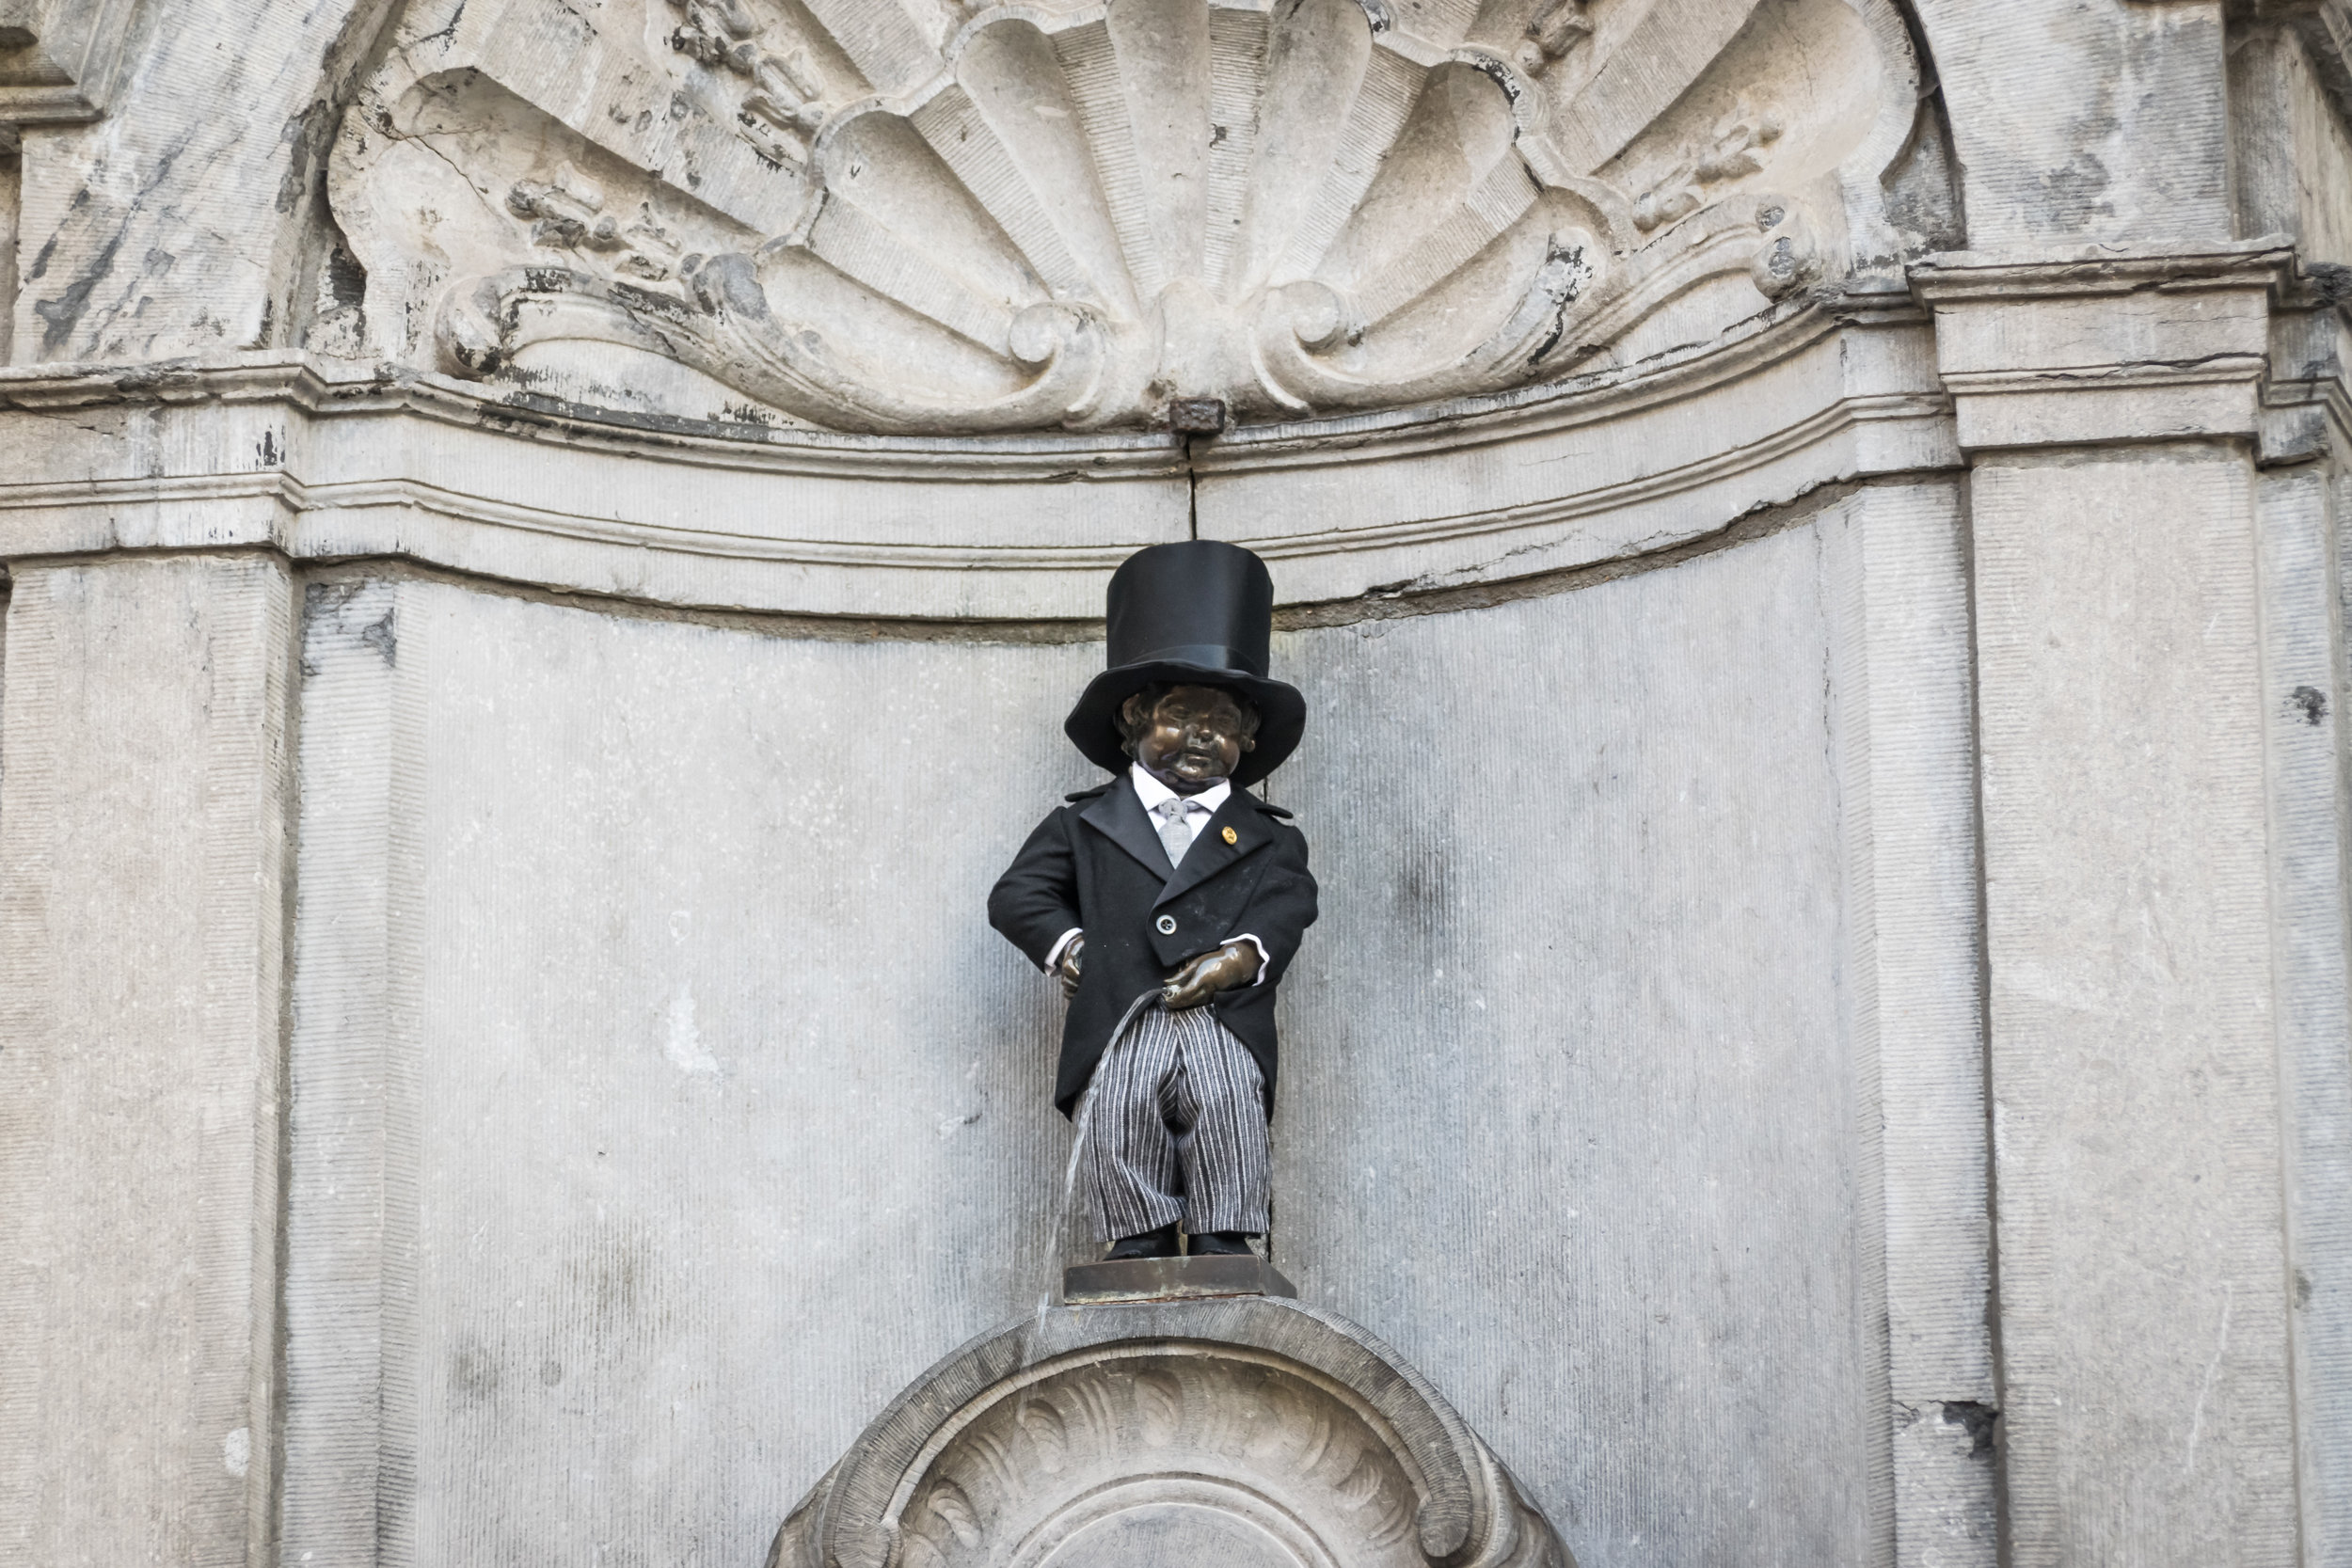 Manneken Pis, originally a water fountain and now a city symbol